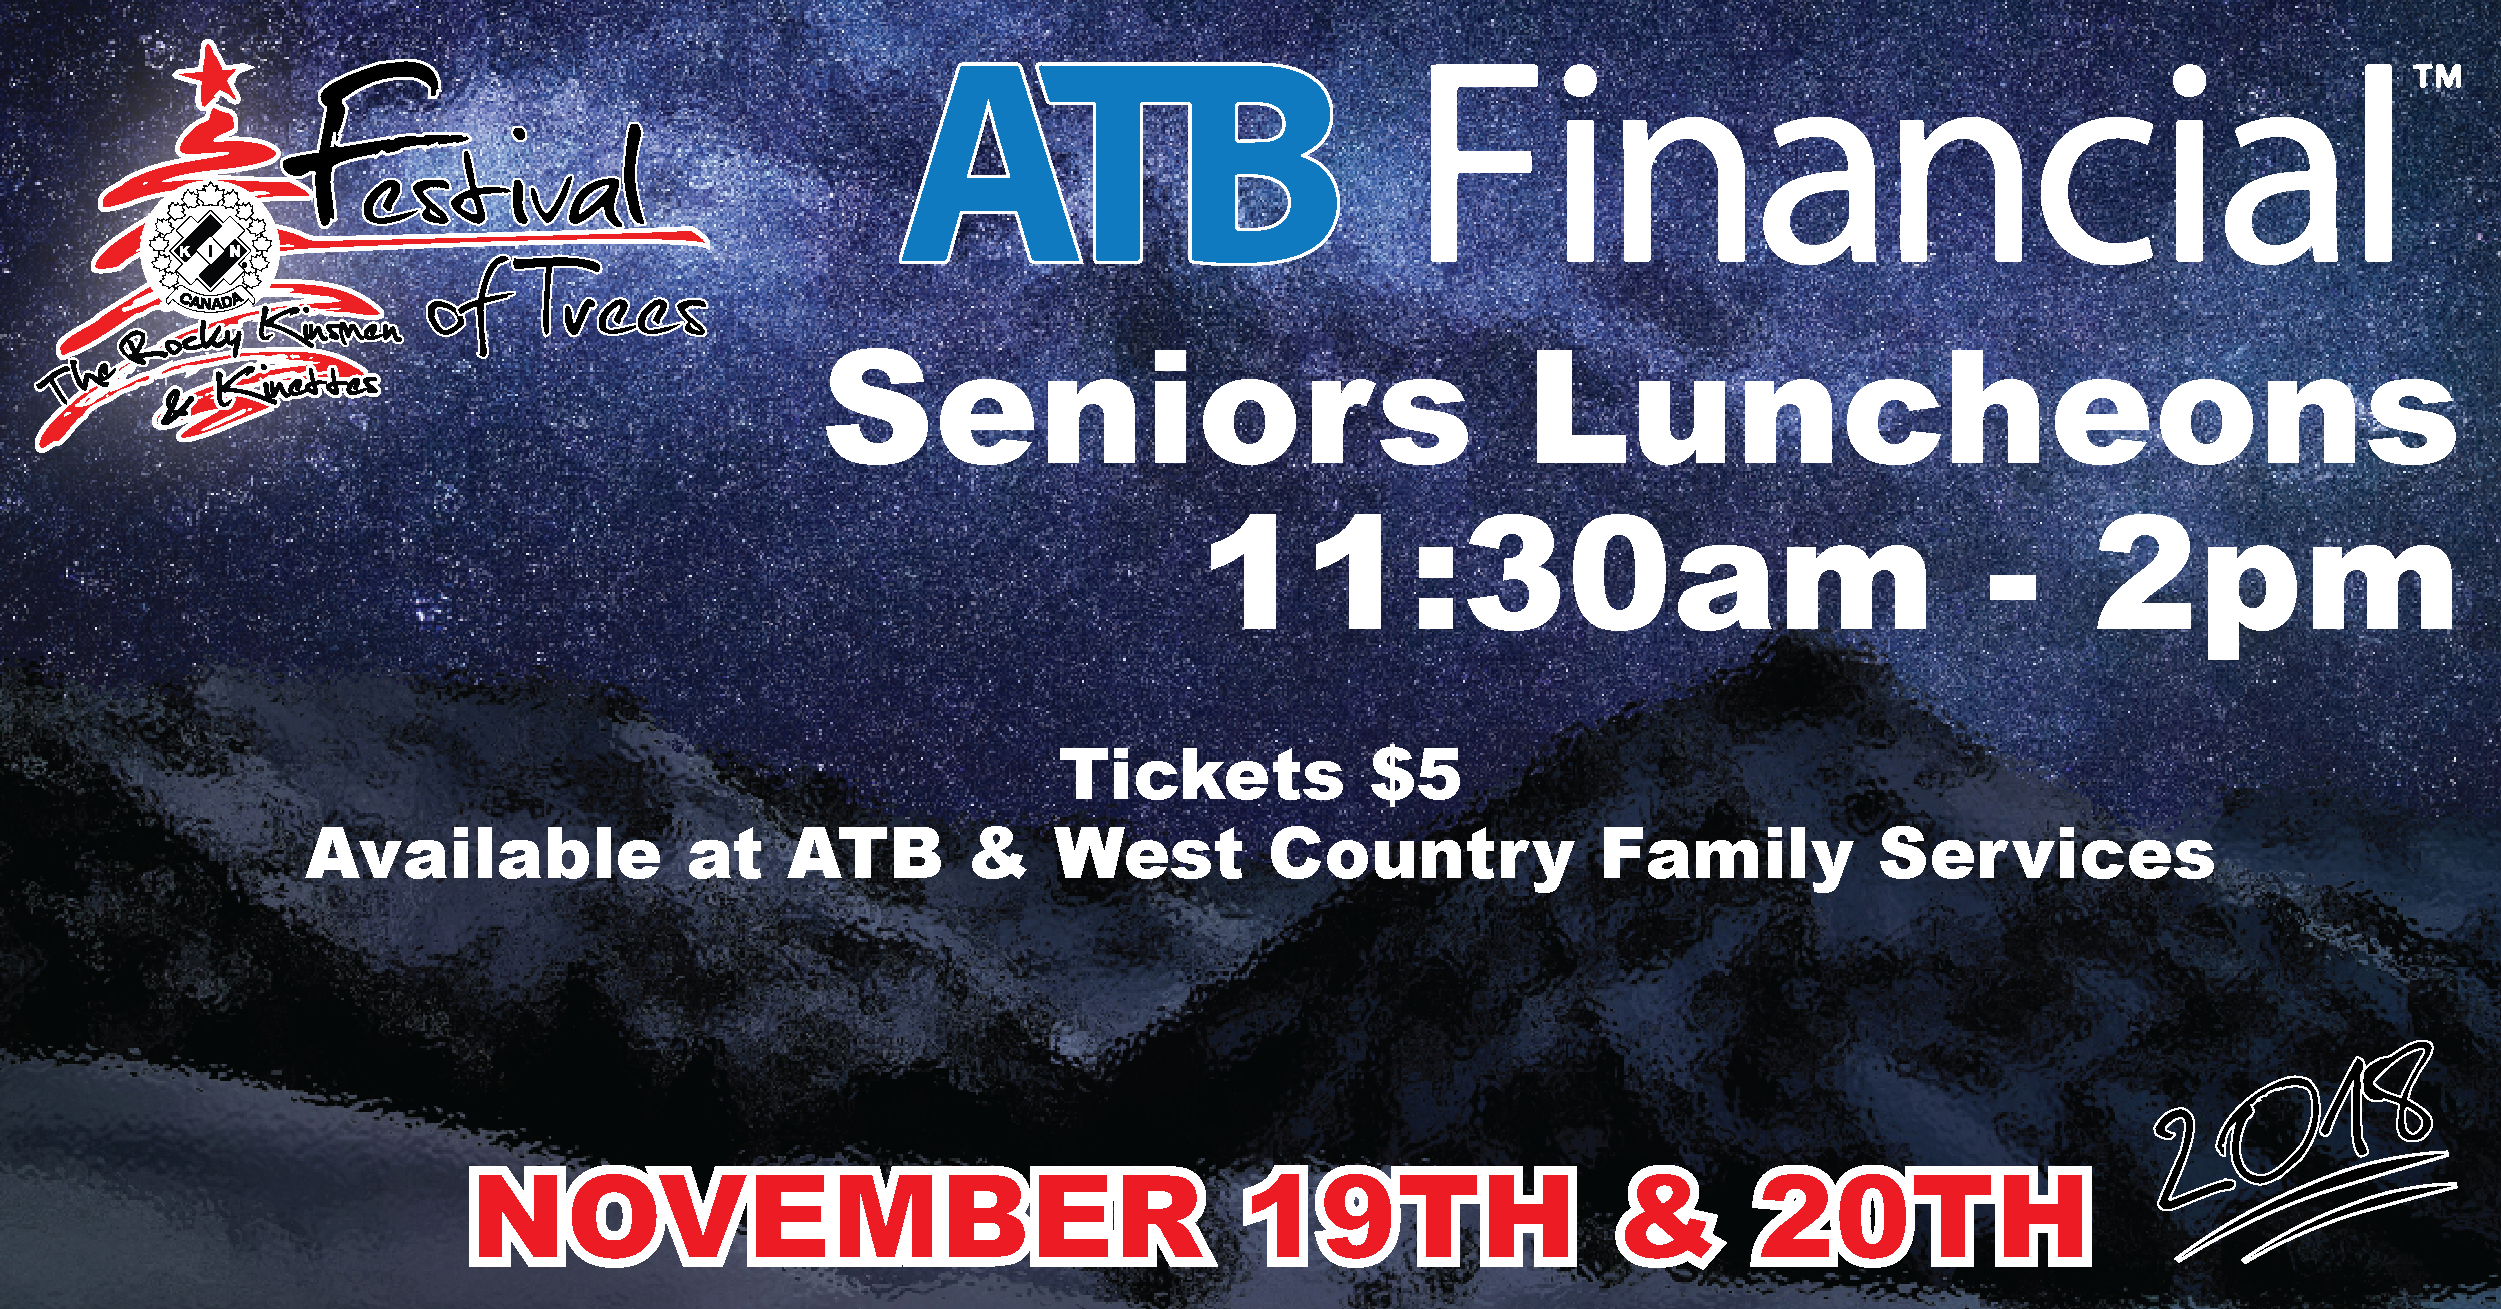 FaceBookPoster_ATB Luncheon